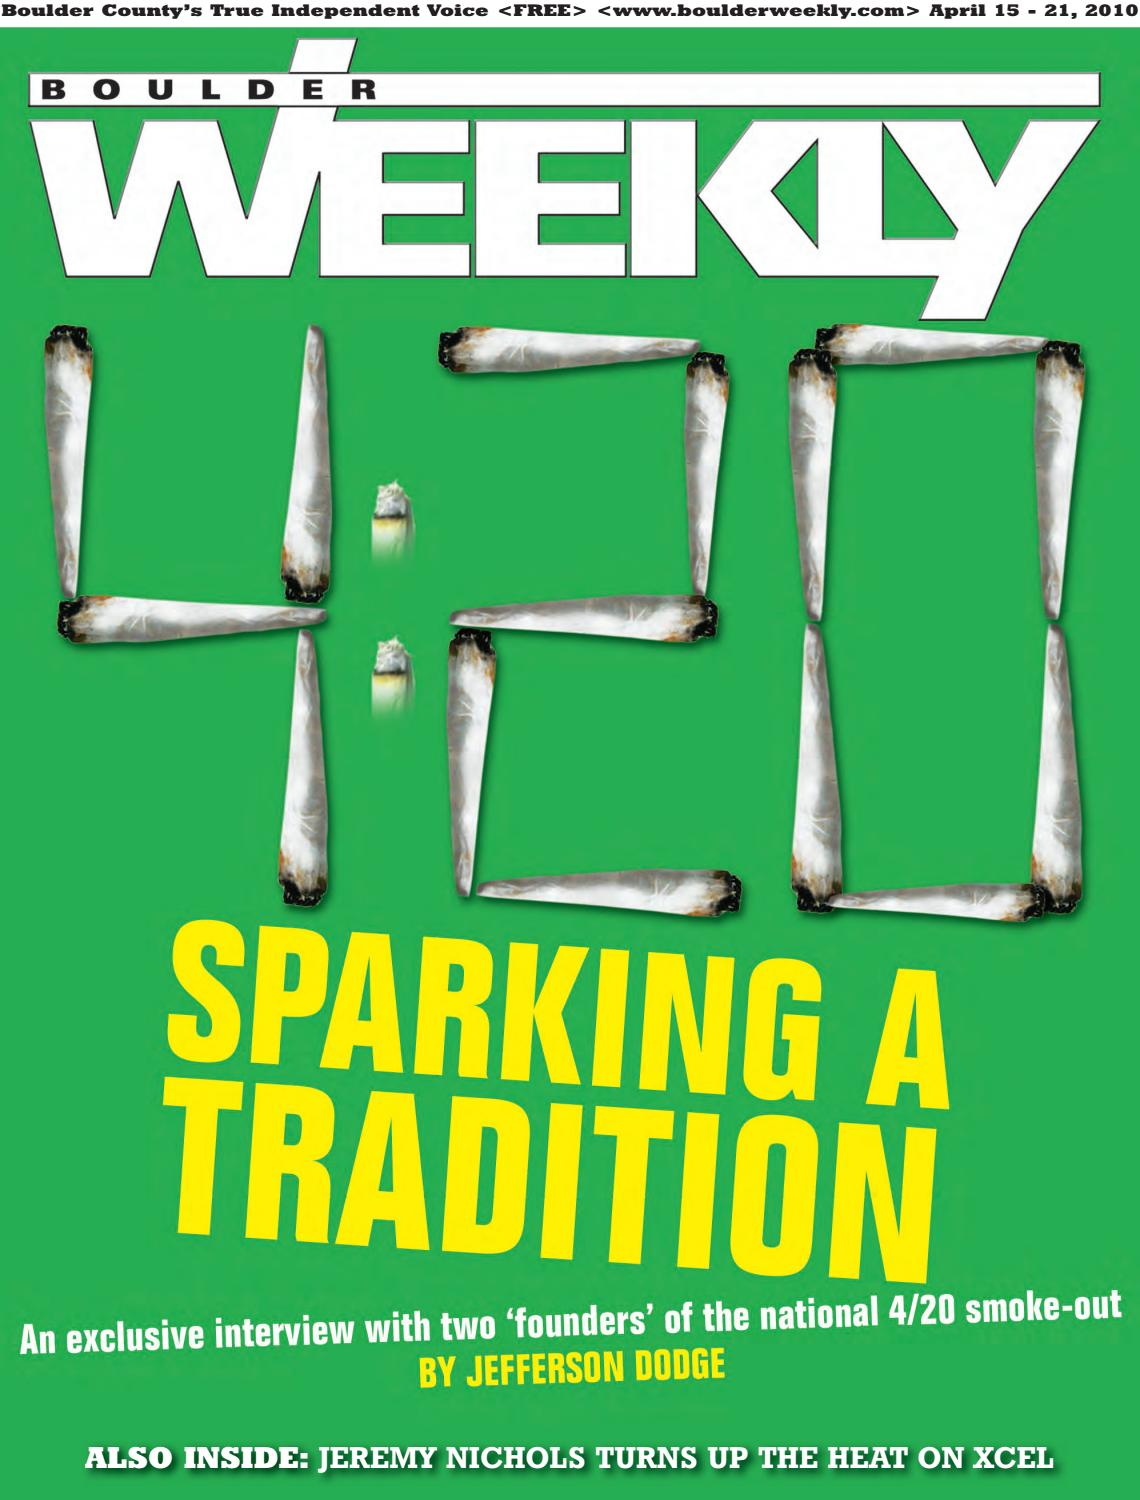 4 15 10 boulder weekly by Boulder Weekly - issuu 2ba717f25